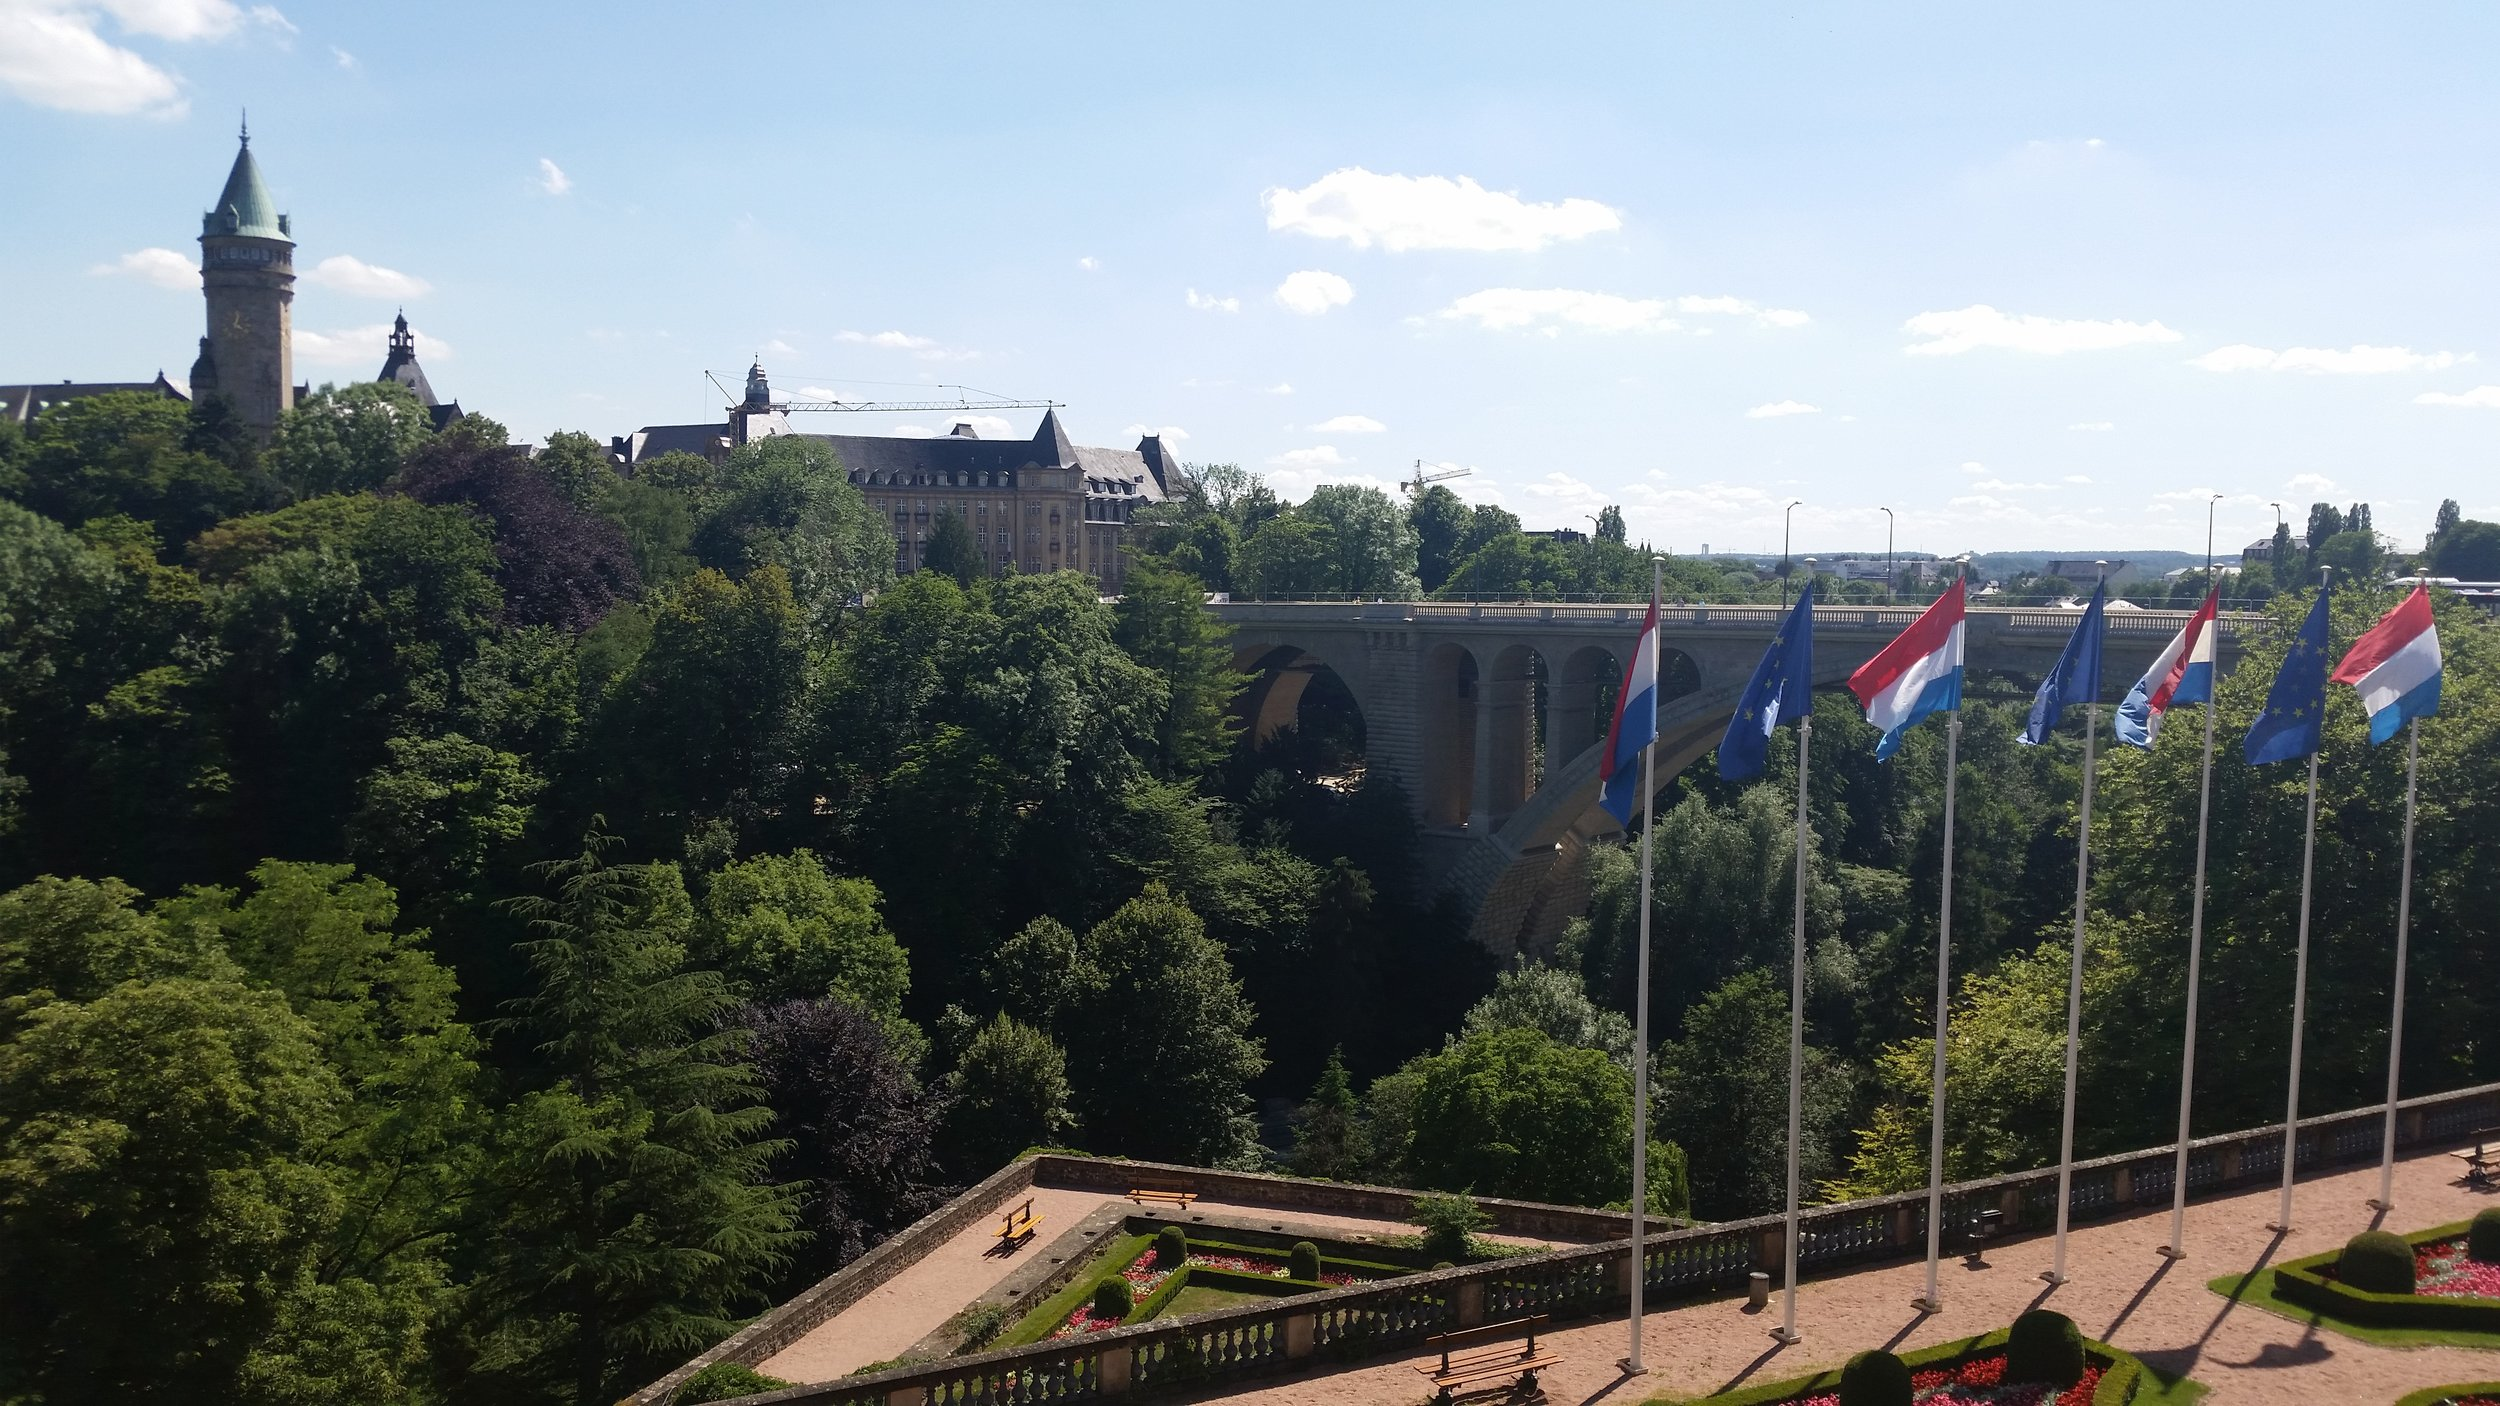 View of the Adolphe Bridge and Place de la Constitution from the Cathedrale Notre Dame